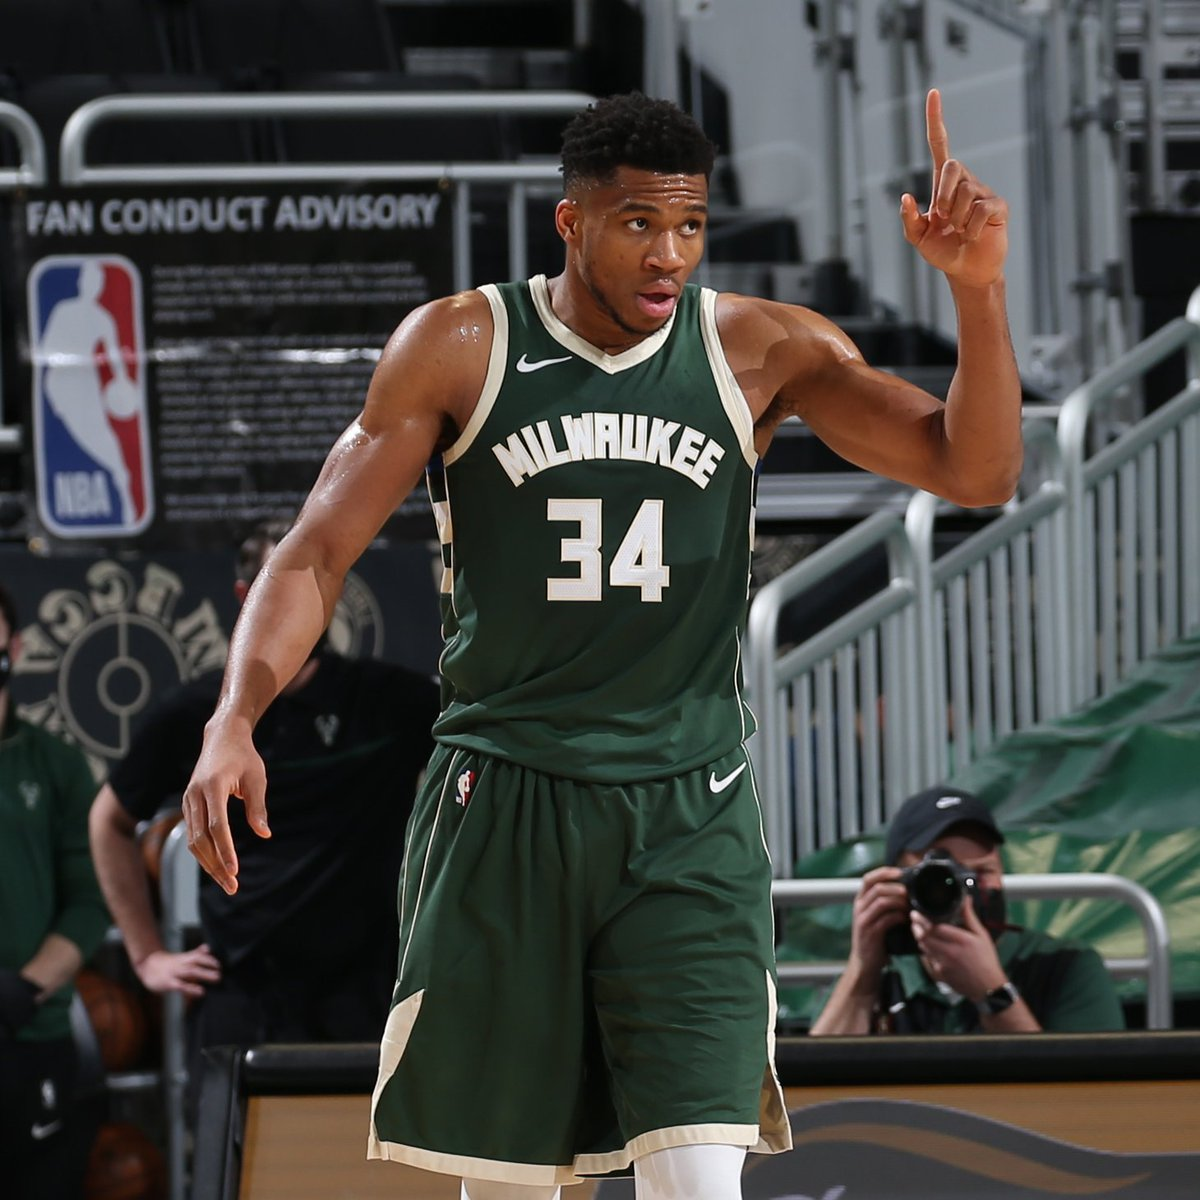 35+PTS in 3 straight games for Giannis:  38 PTS, 18 REB 37 PTS, 8 REB, 8 AST 38 PTS, 10 REB  @Giannis_An34 x #NBAAllStar